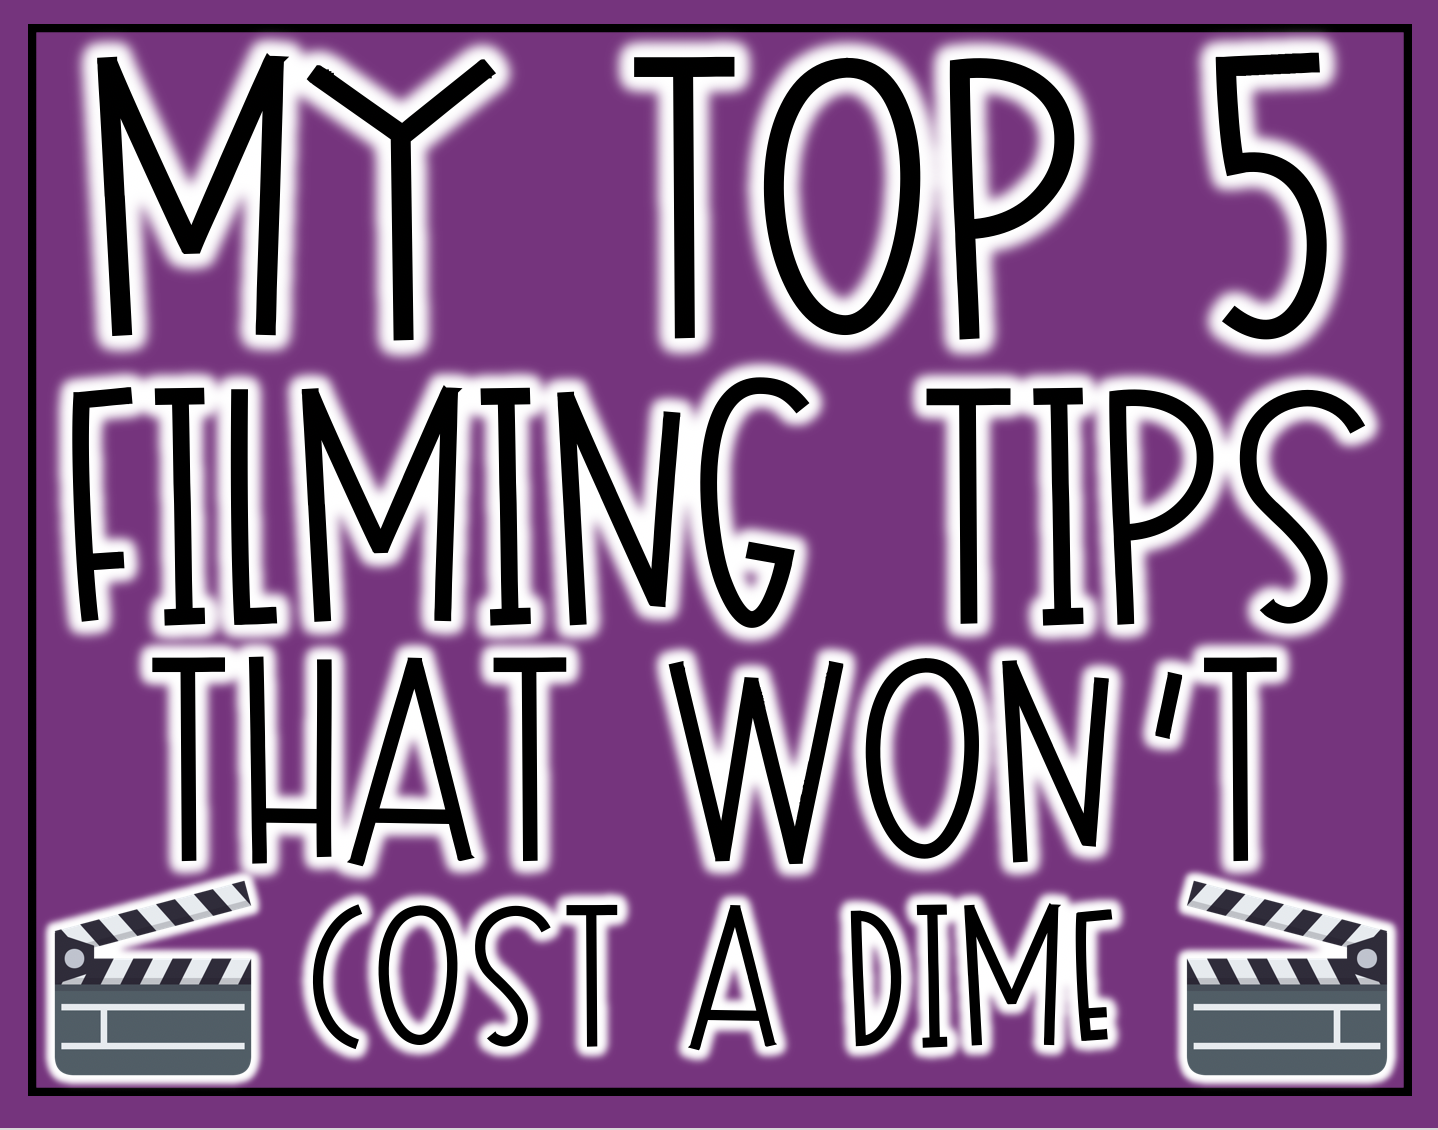 My Top 5 Filming Tips That Won't Cost a Dime: These no cost filming tips will hopefully help make teacher's instructional videos a bit more engaging.